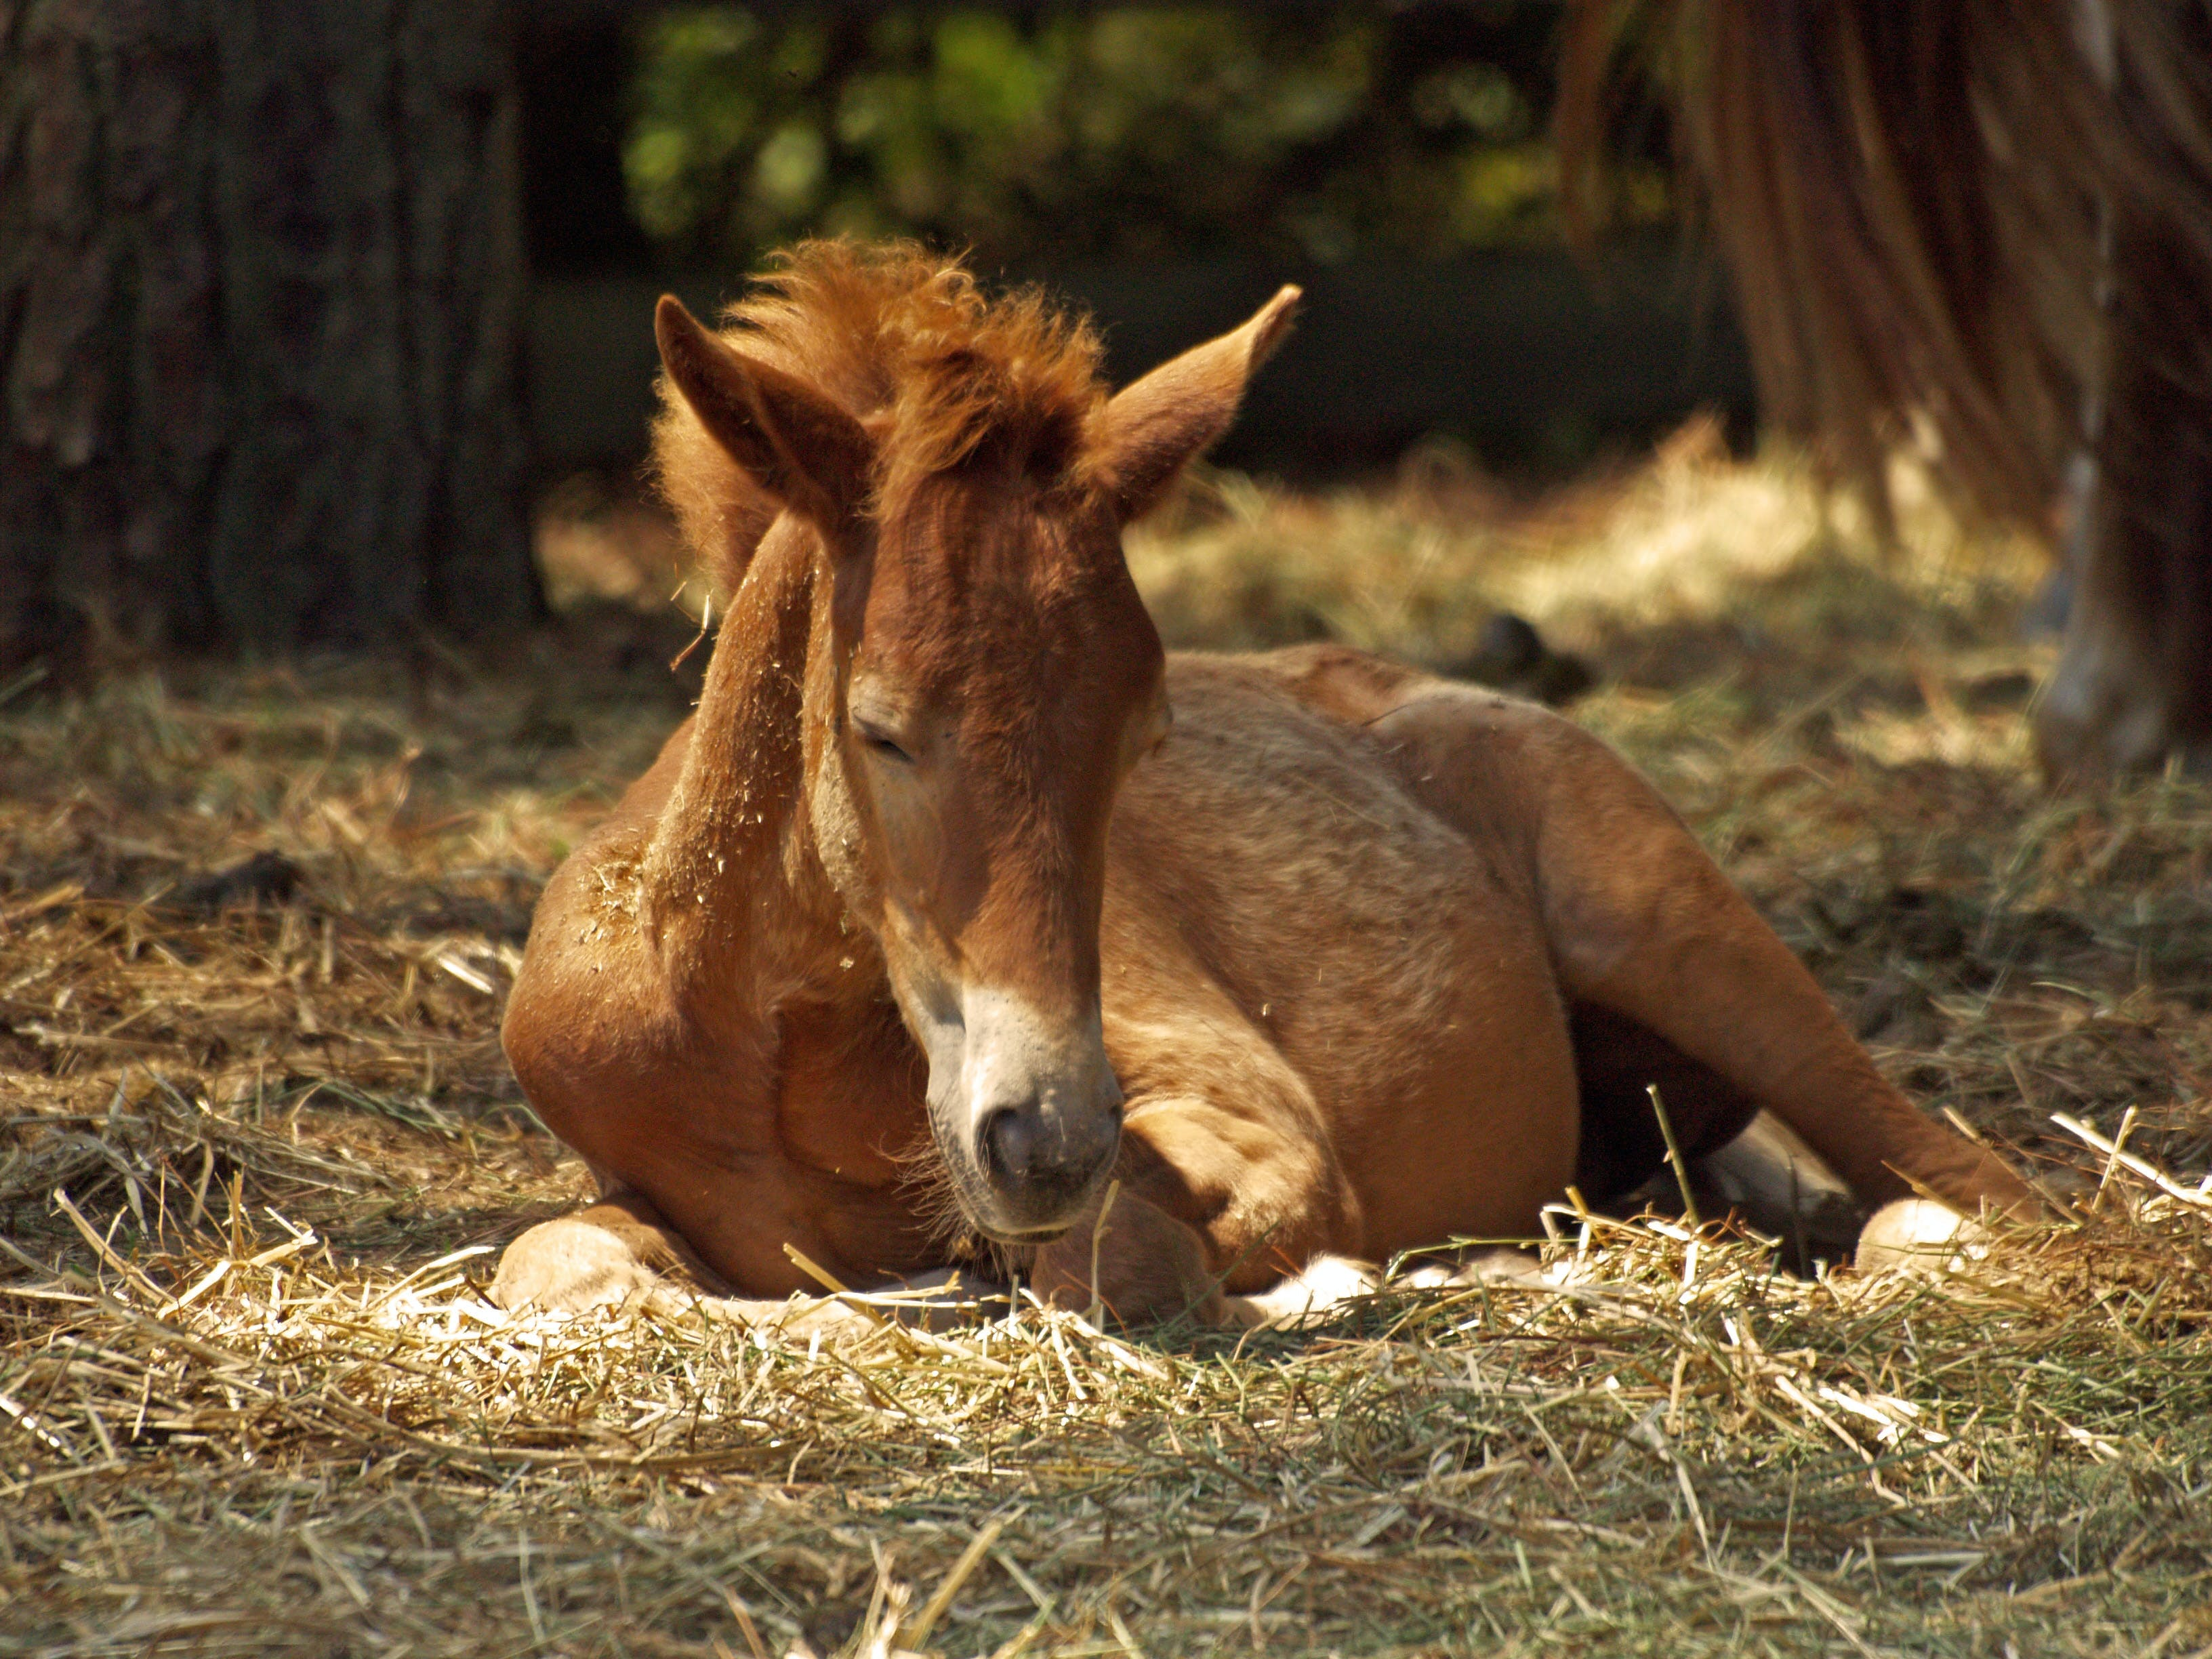 Brown Horse Lying on Ground